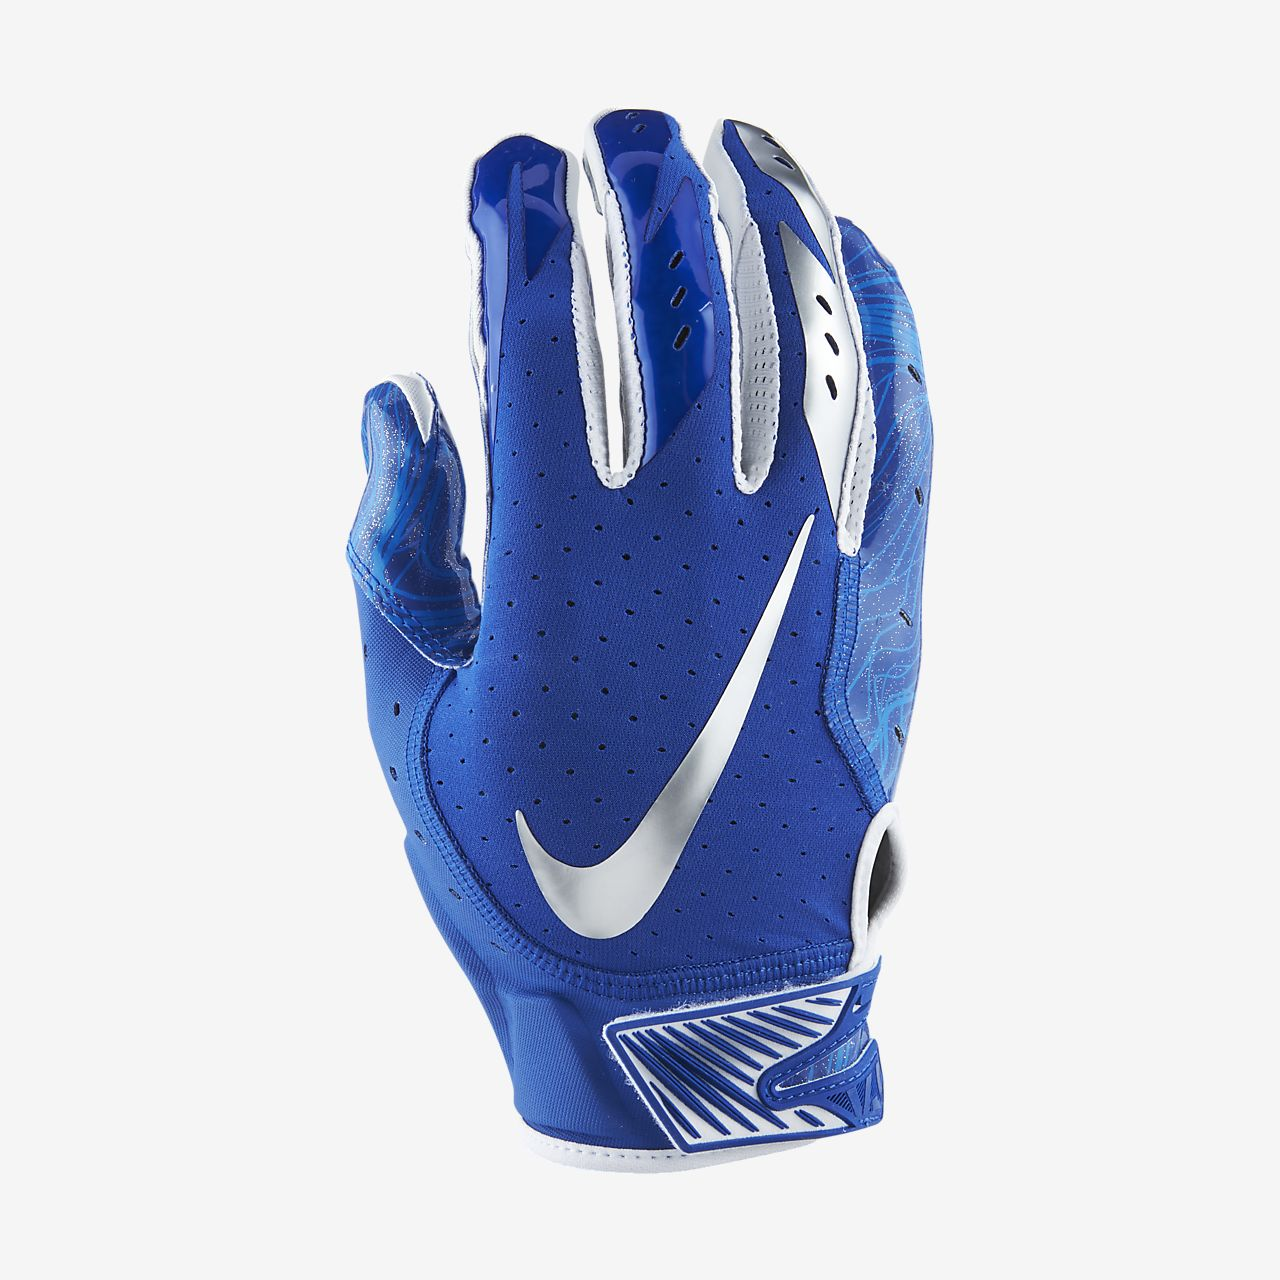 2e5b714aacf Nike Vapor Jet 5.0 Men s Football Gloves. Nike.com